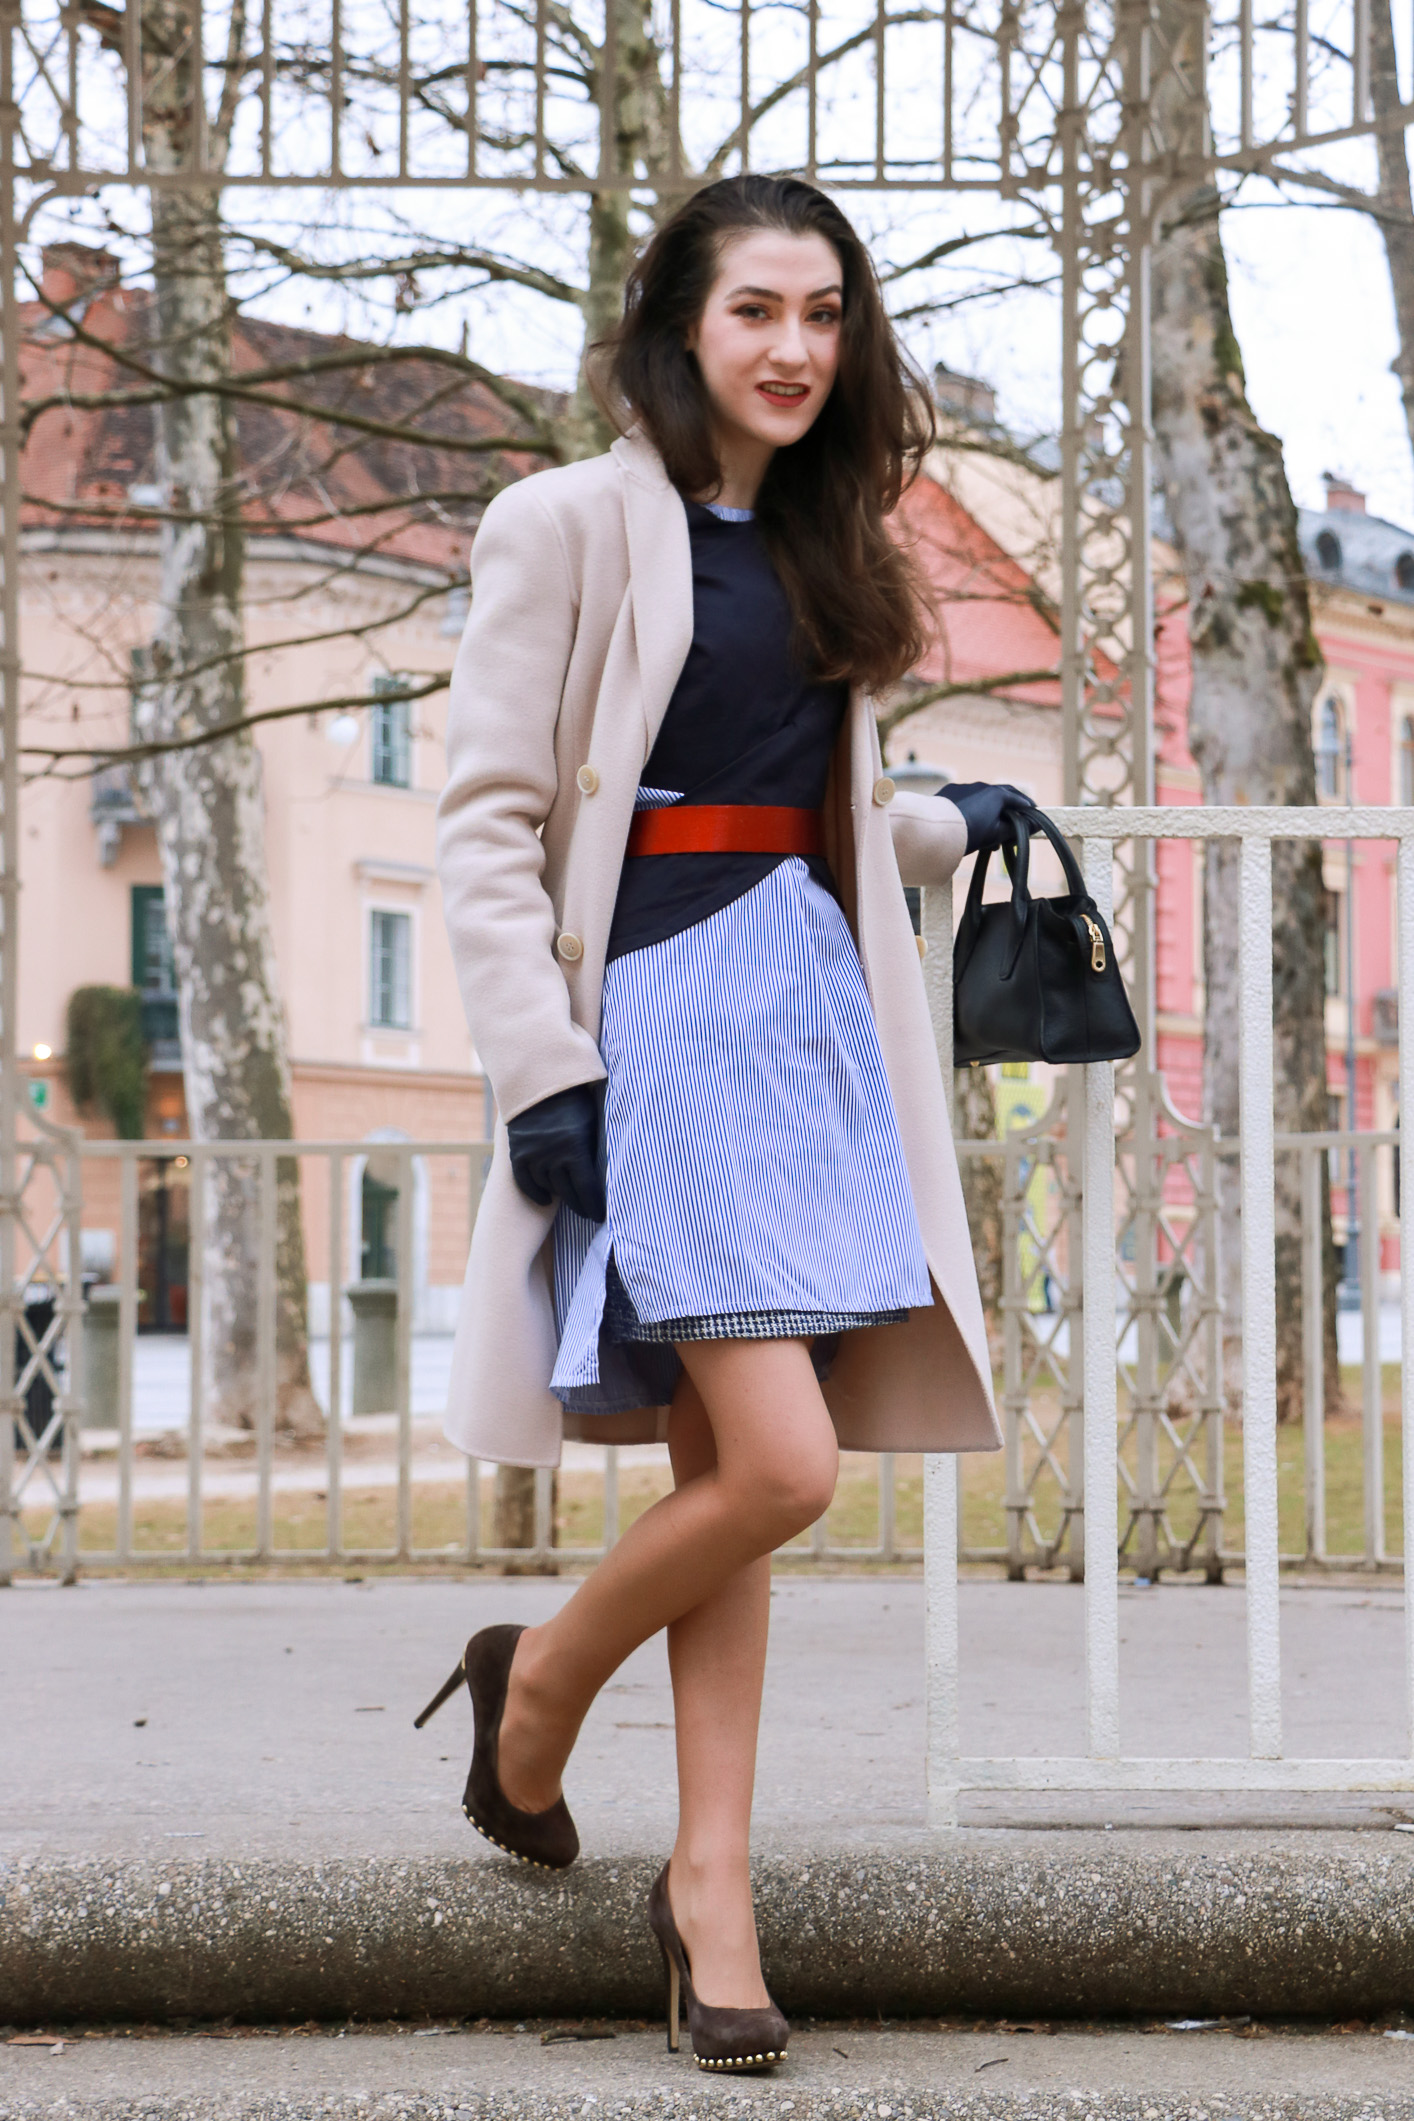 Fashion Blogger Veronika Lipar of Brunette from Wall Street sharing how to style the striped shirt dress